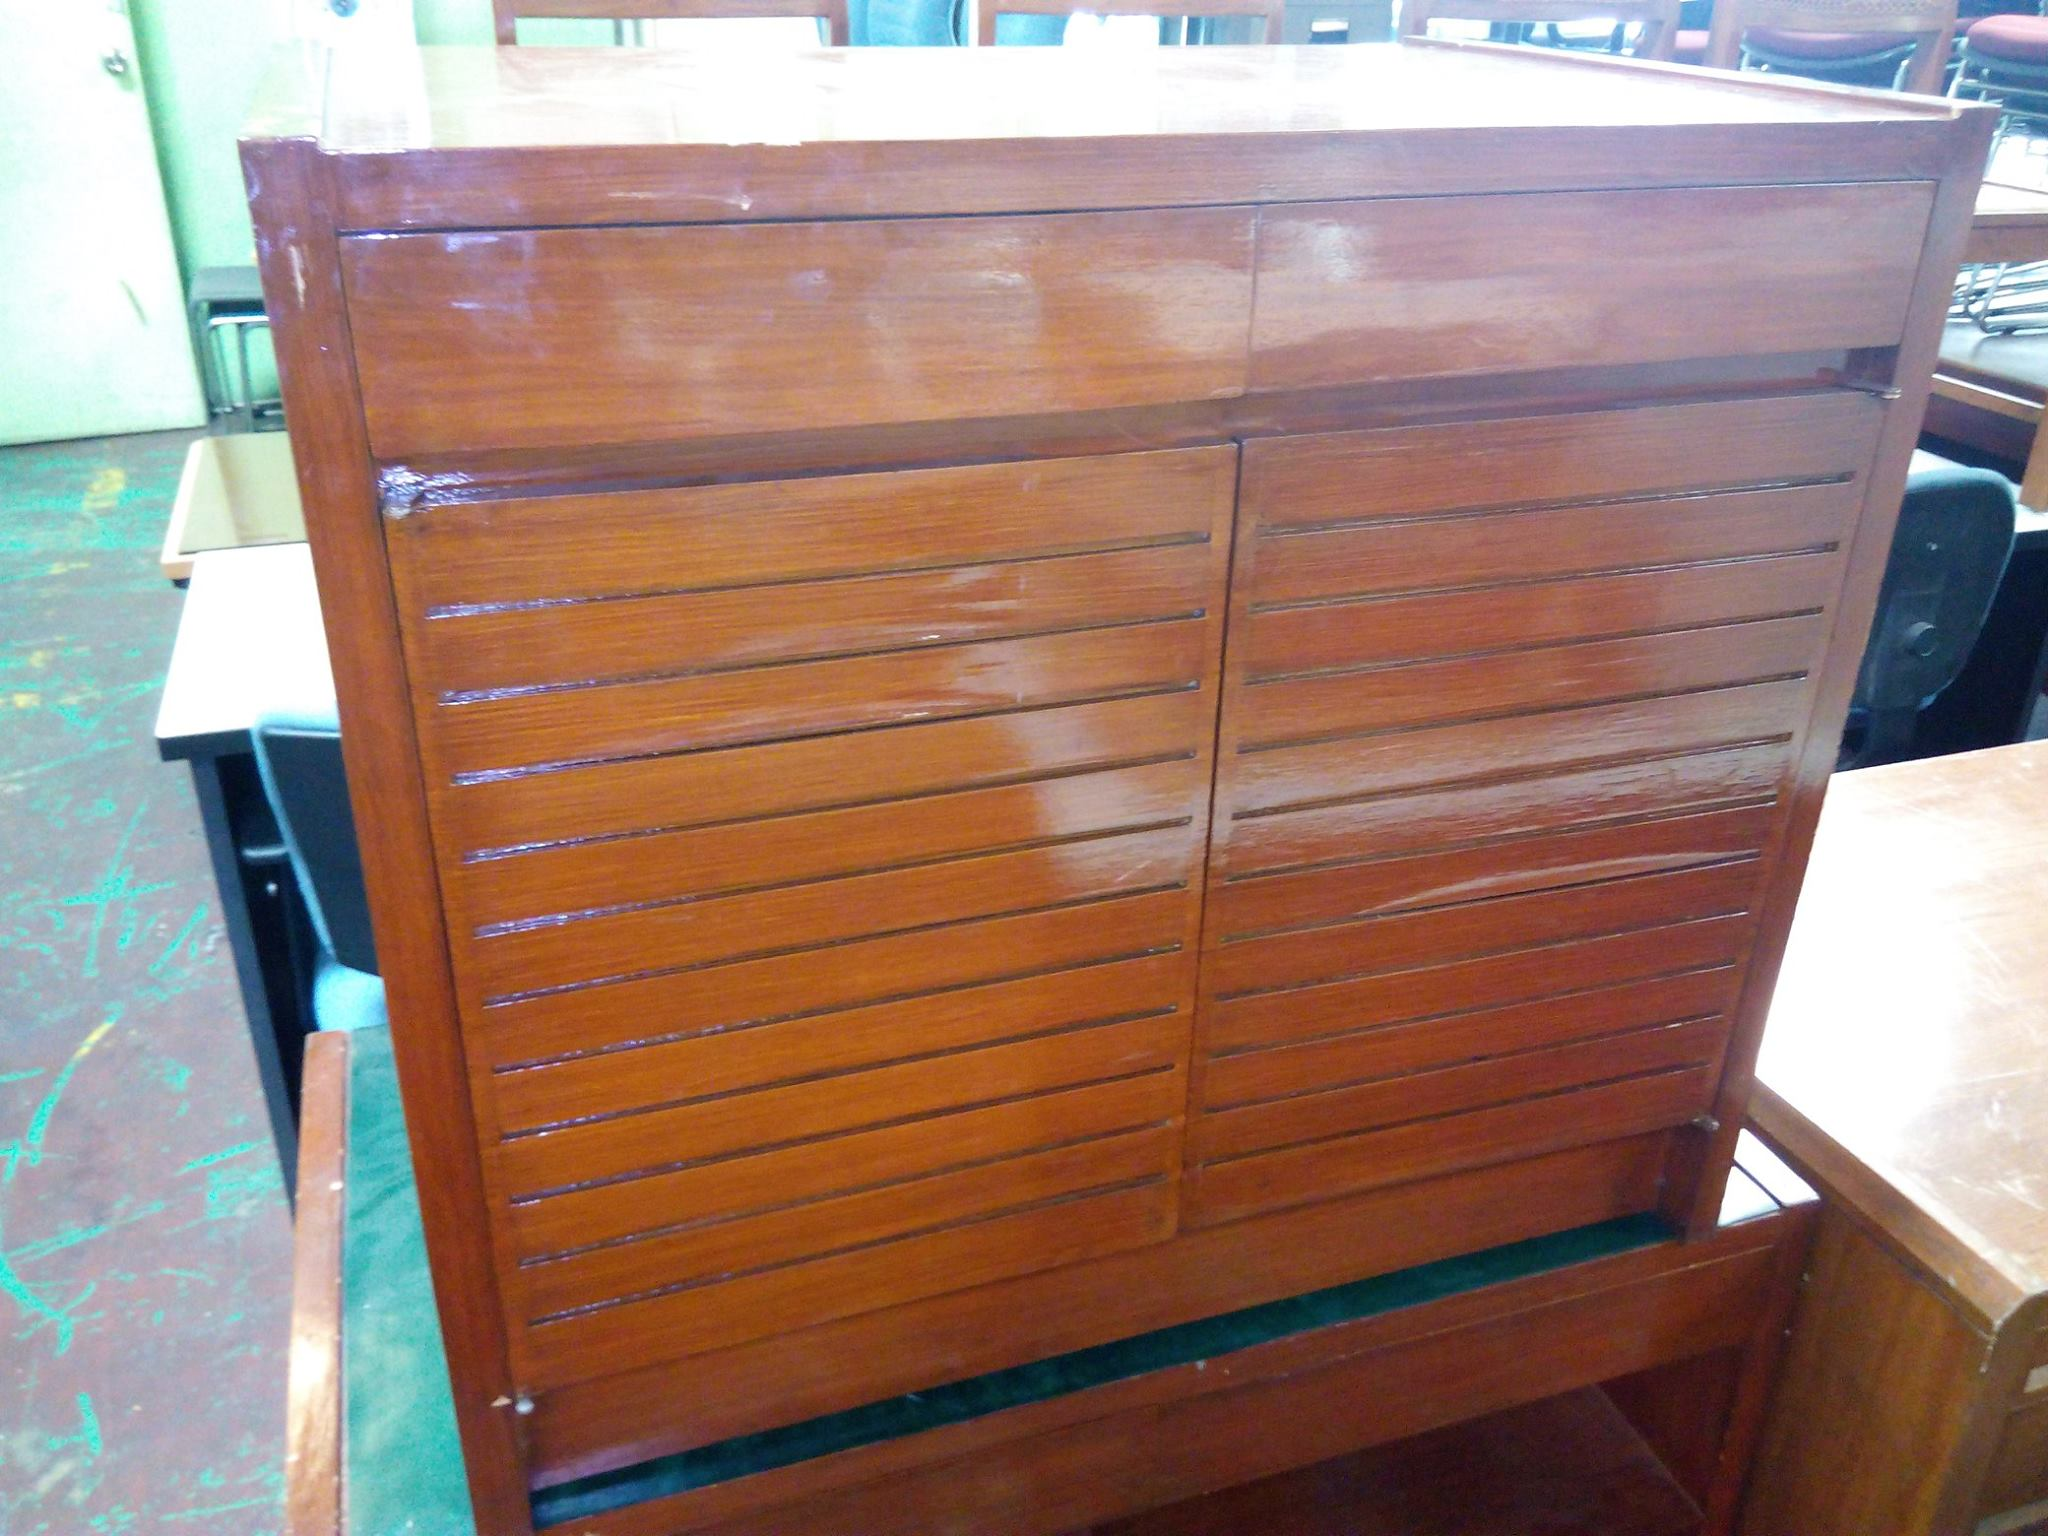 Surplus home cabinet used office furniture philippines Home office furniture philippines